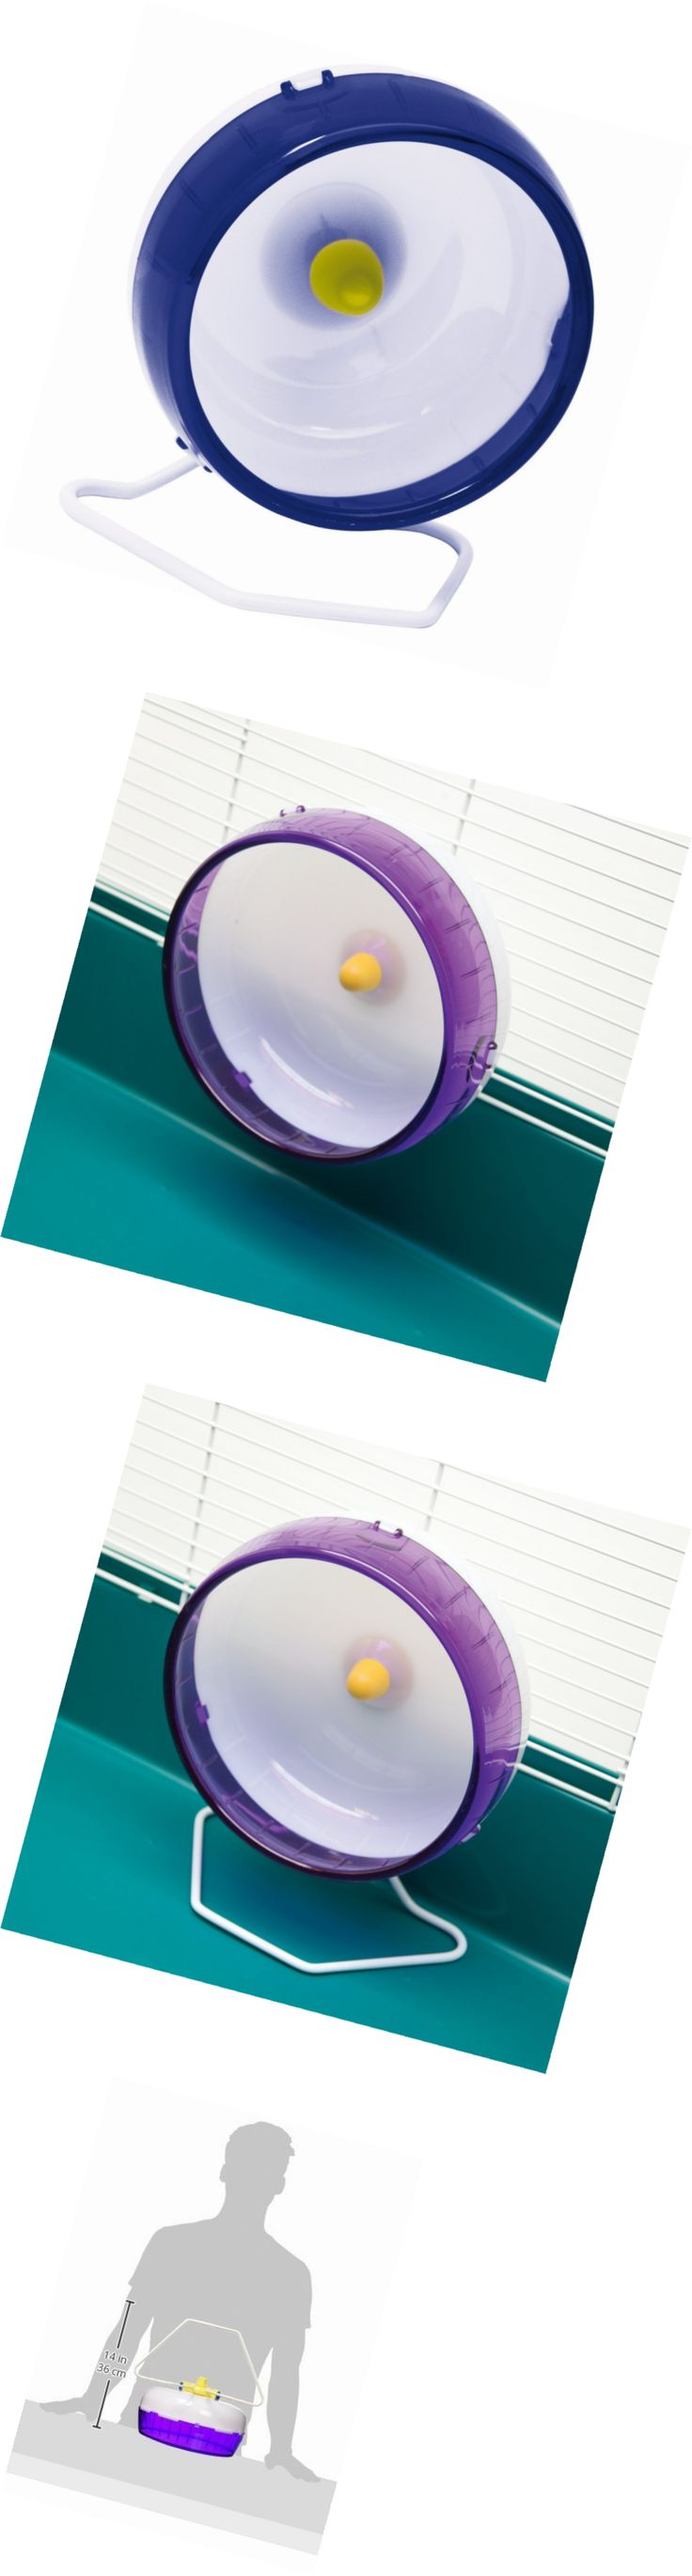 Exercise and Toys 63113: Kaytee Silent Spinner Exercise Wheel -> BUY IT NOW ONLY: $31.45 on eBay!